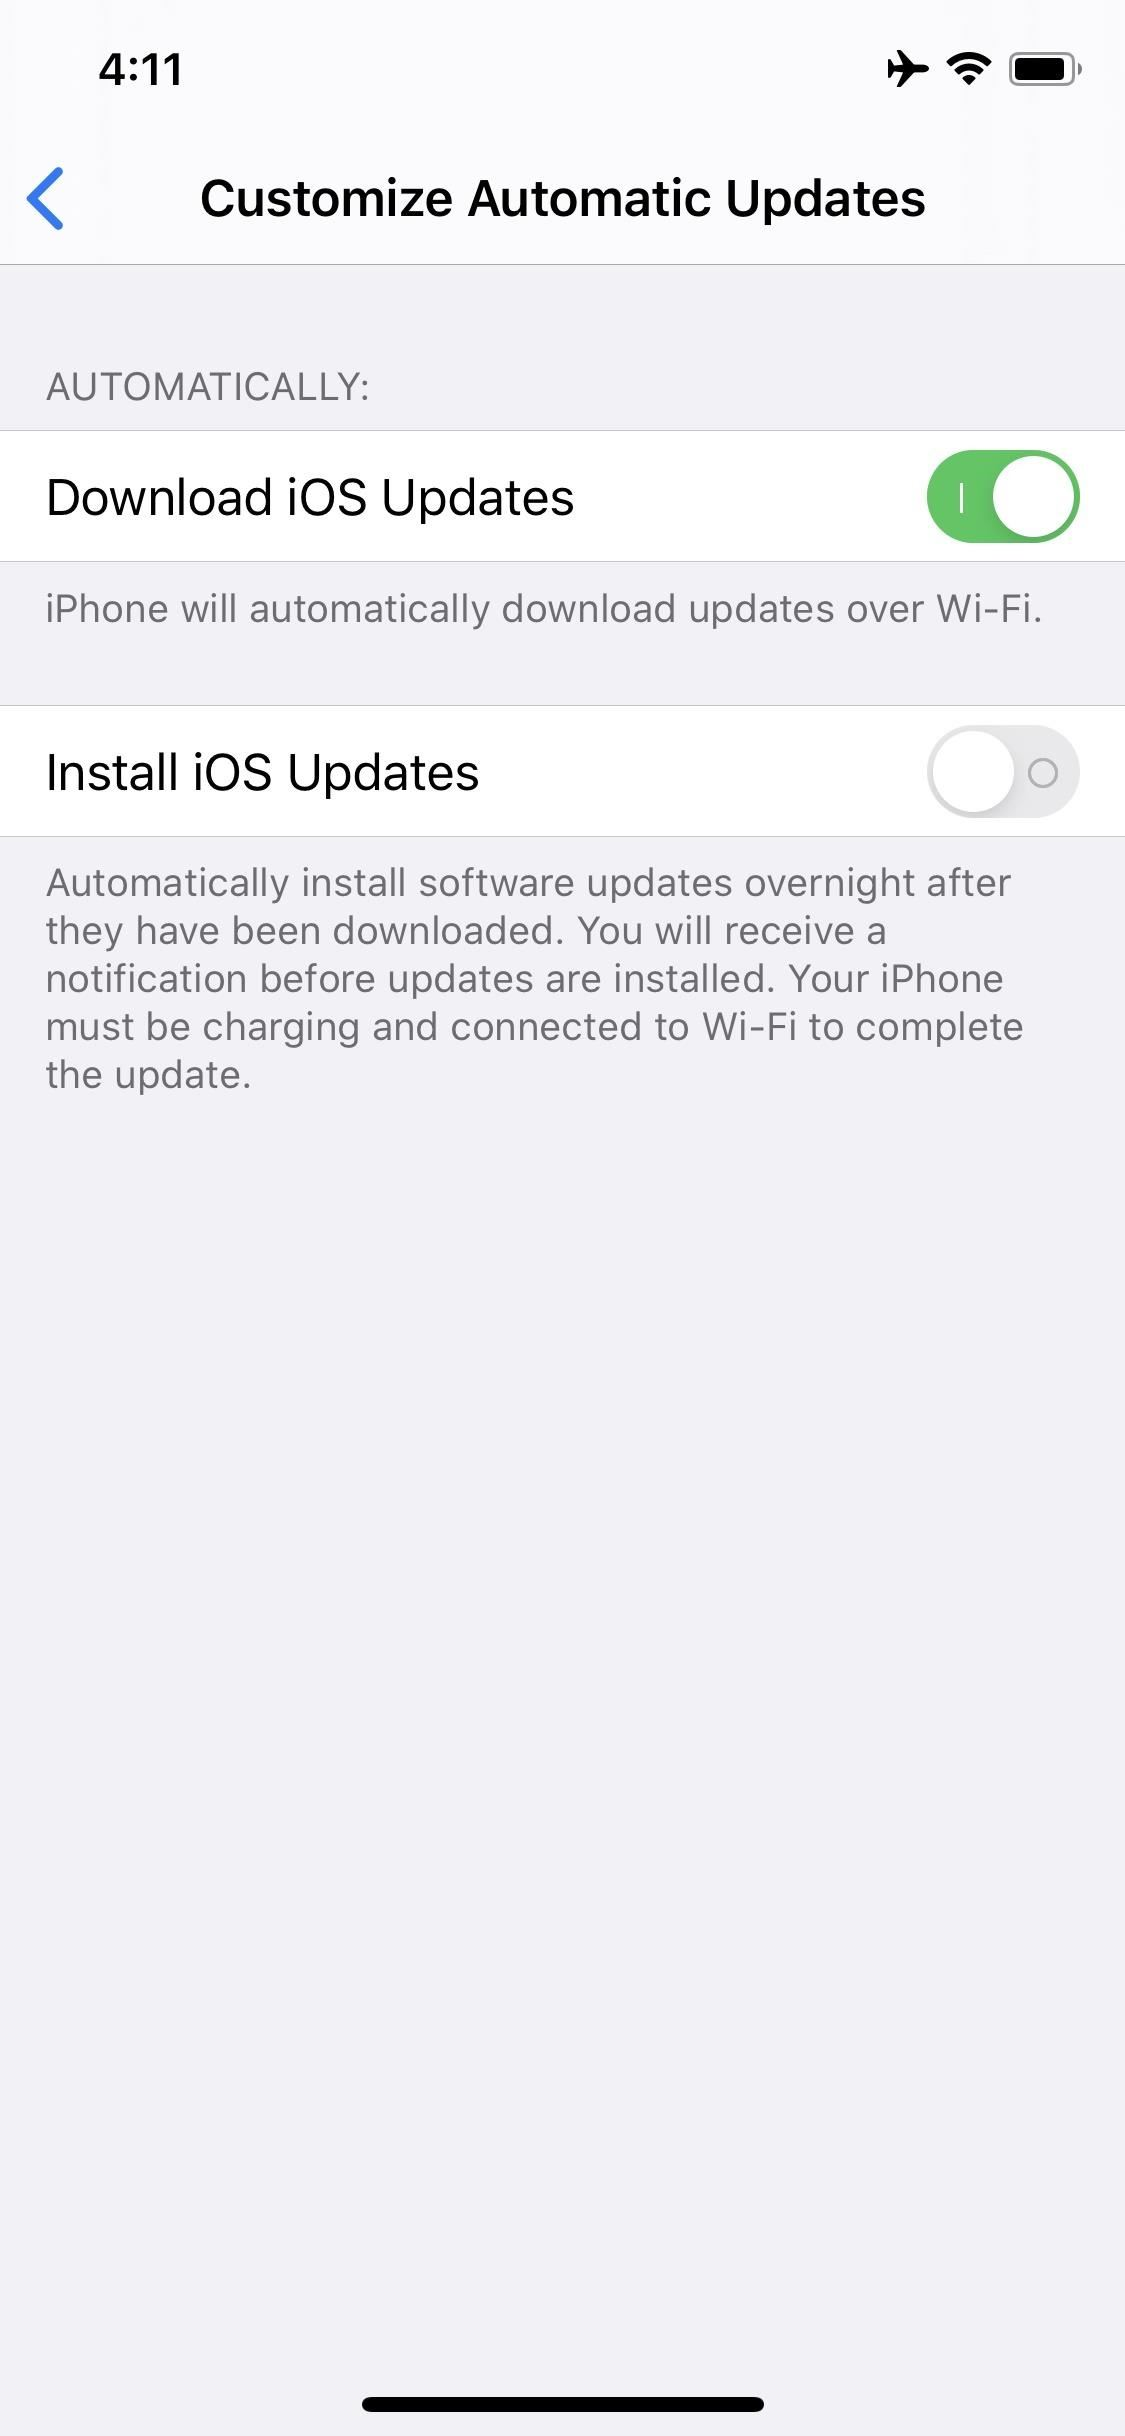 New iPhone Features & Changes in iOS 13.6 That You Need to Know About